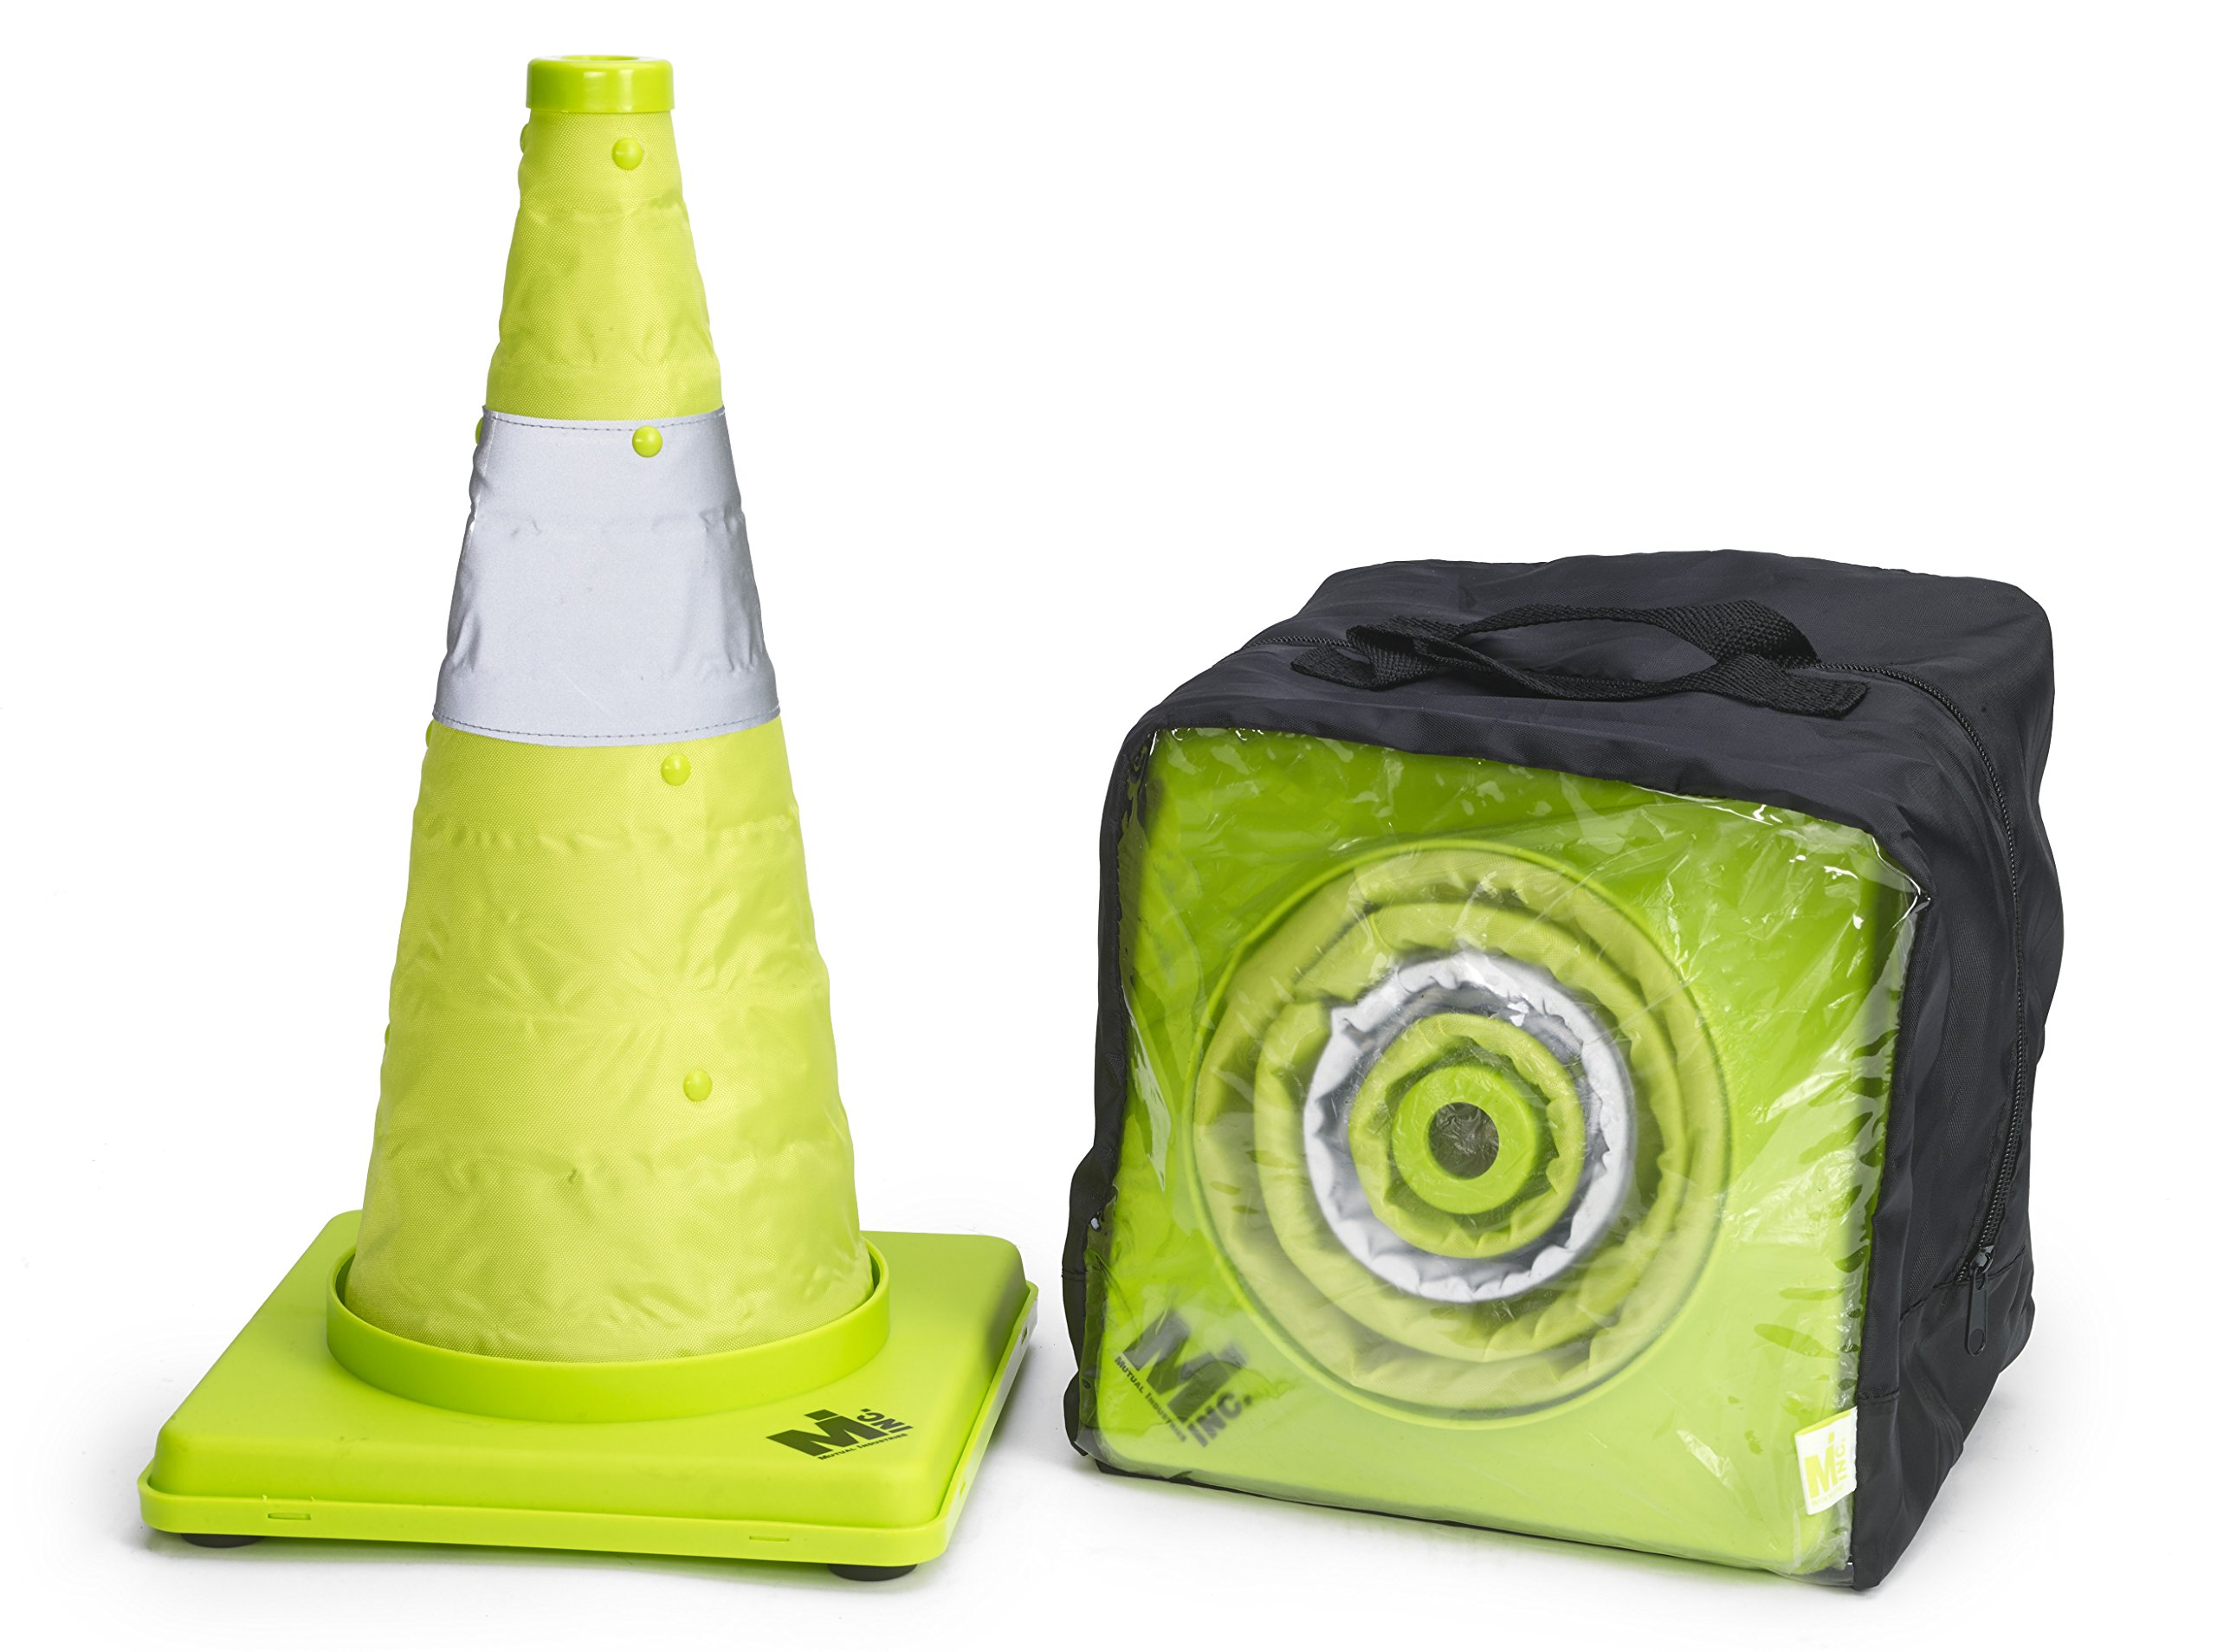 Mutual Industries 17712-4-18 Collapsible Reflective Traffic Cone with Inside Light, 18'' x 10'' x 10'', Lime (Pack 0F 4)